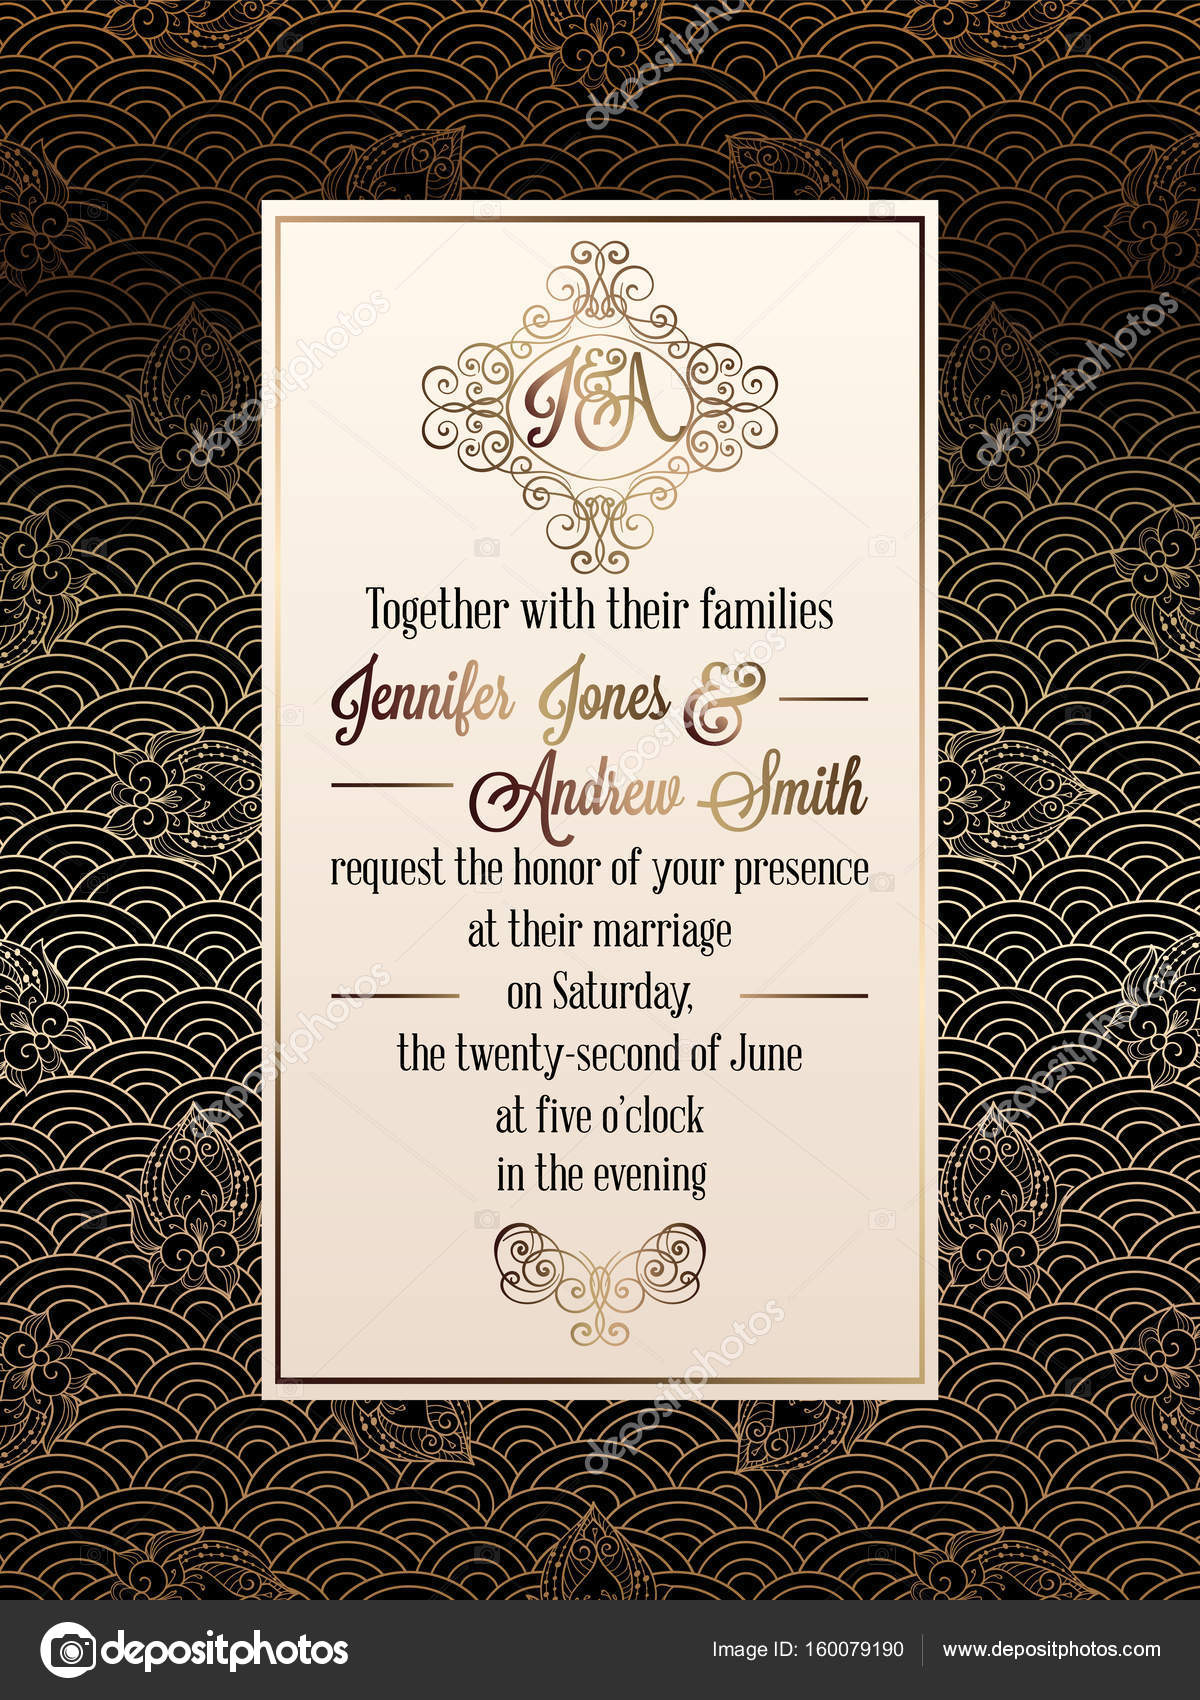 Vintage baroque style wedding invitation card template elegant vintage baroque style wedding invitation card template elegant formal design with damask background yelopaper Images